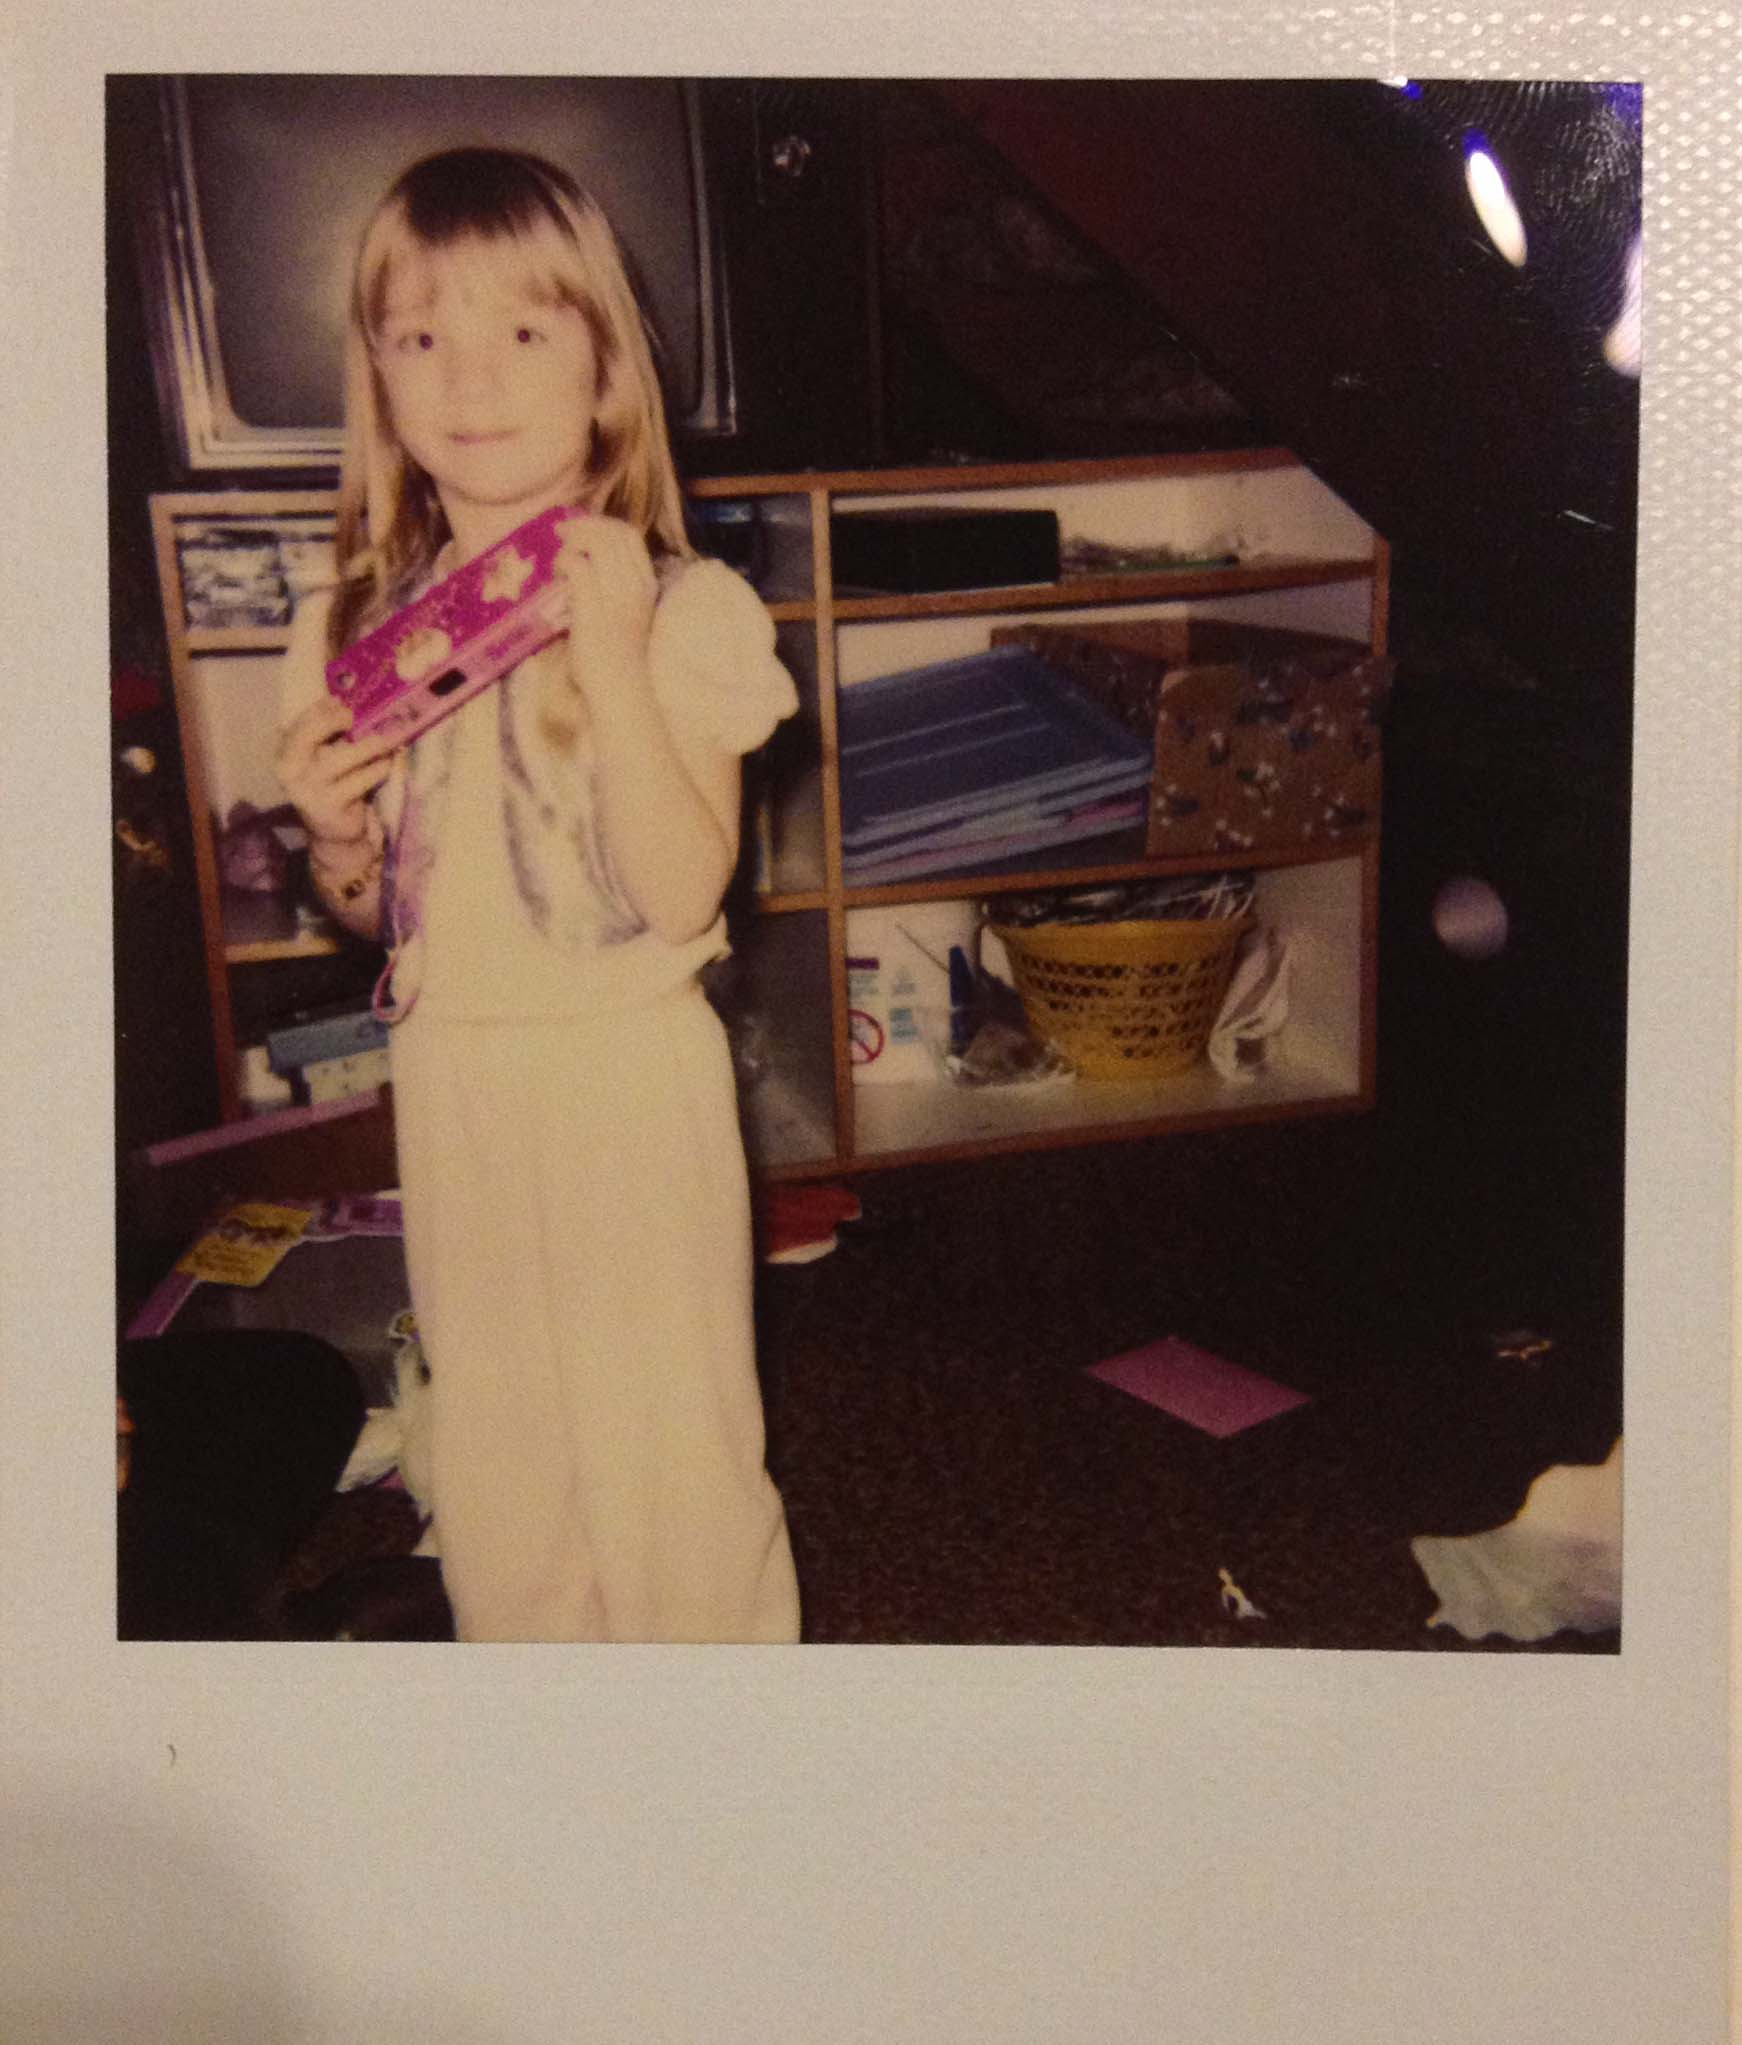 My first camera, a 110mm film camera (and rocking Aladdin pjs)